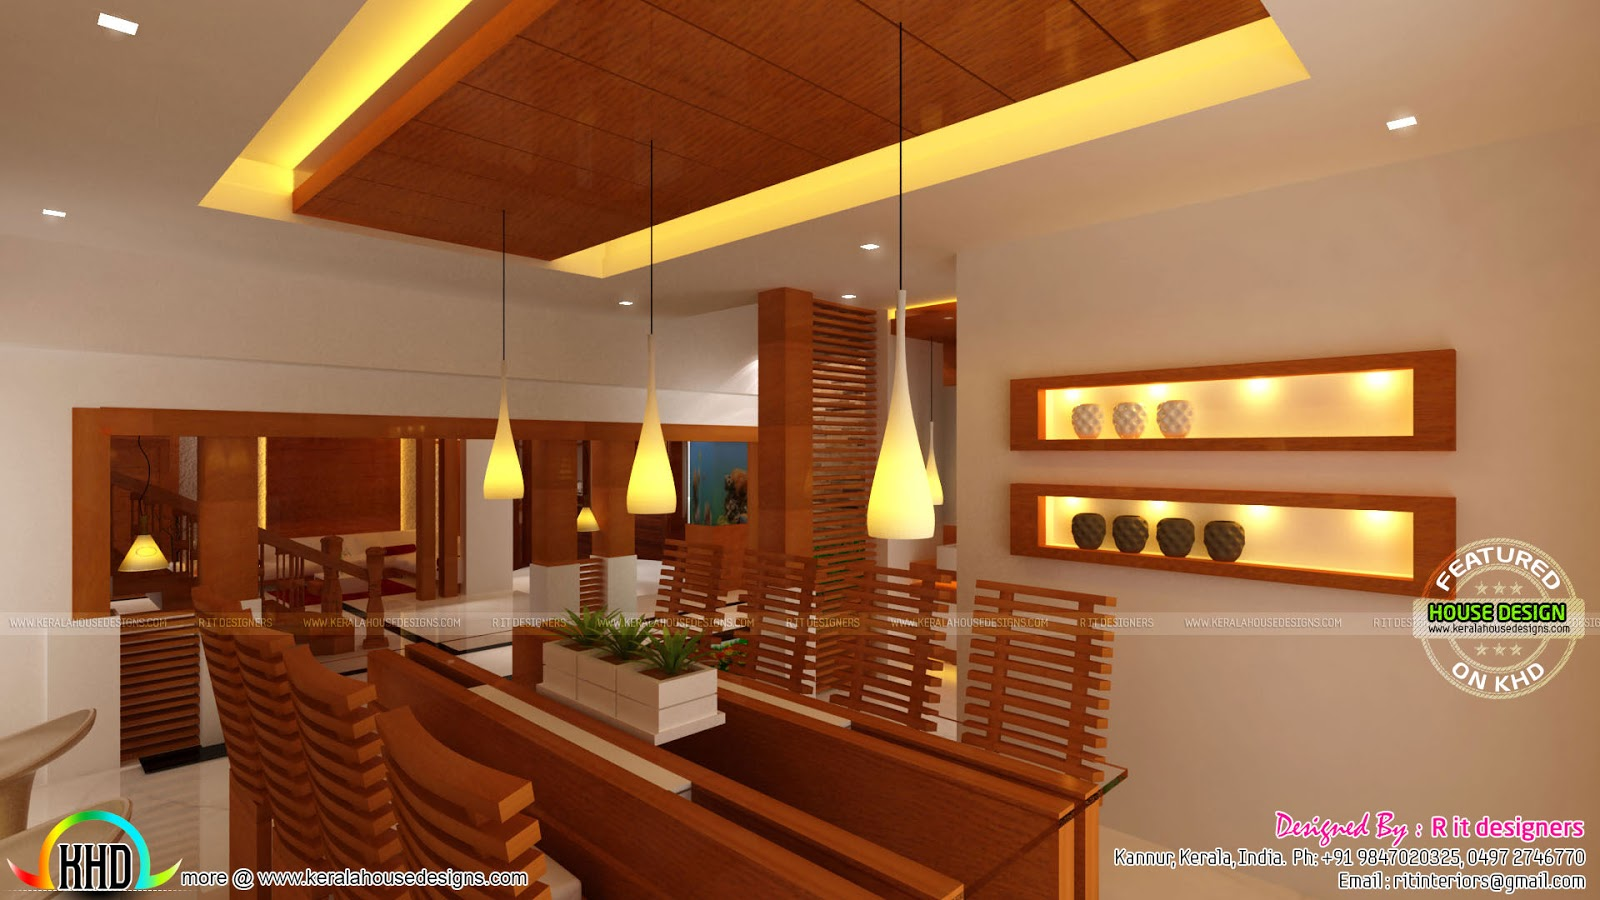 Wooden finish interior designs kerala home design and for Home plans with interior pictures